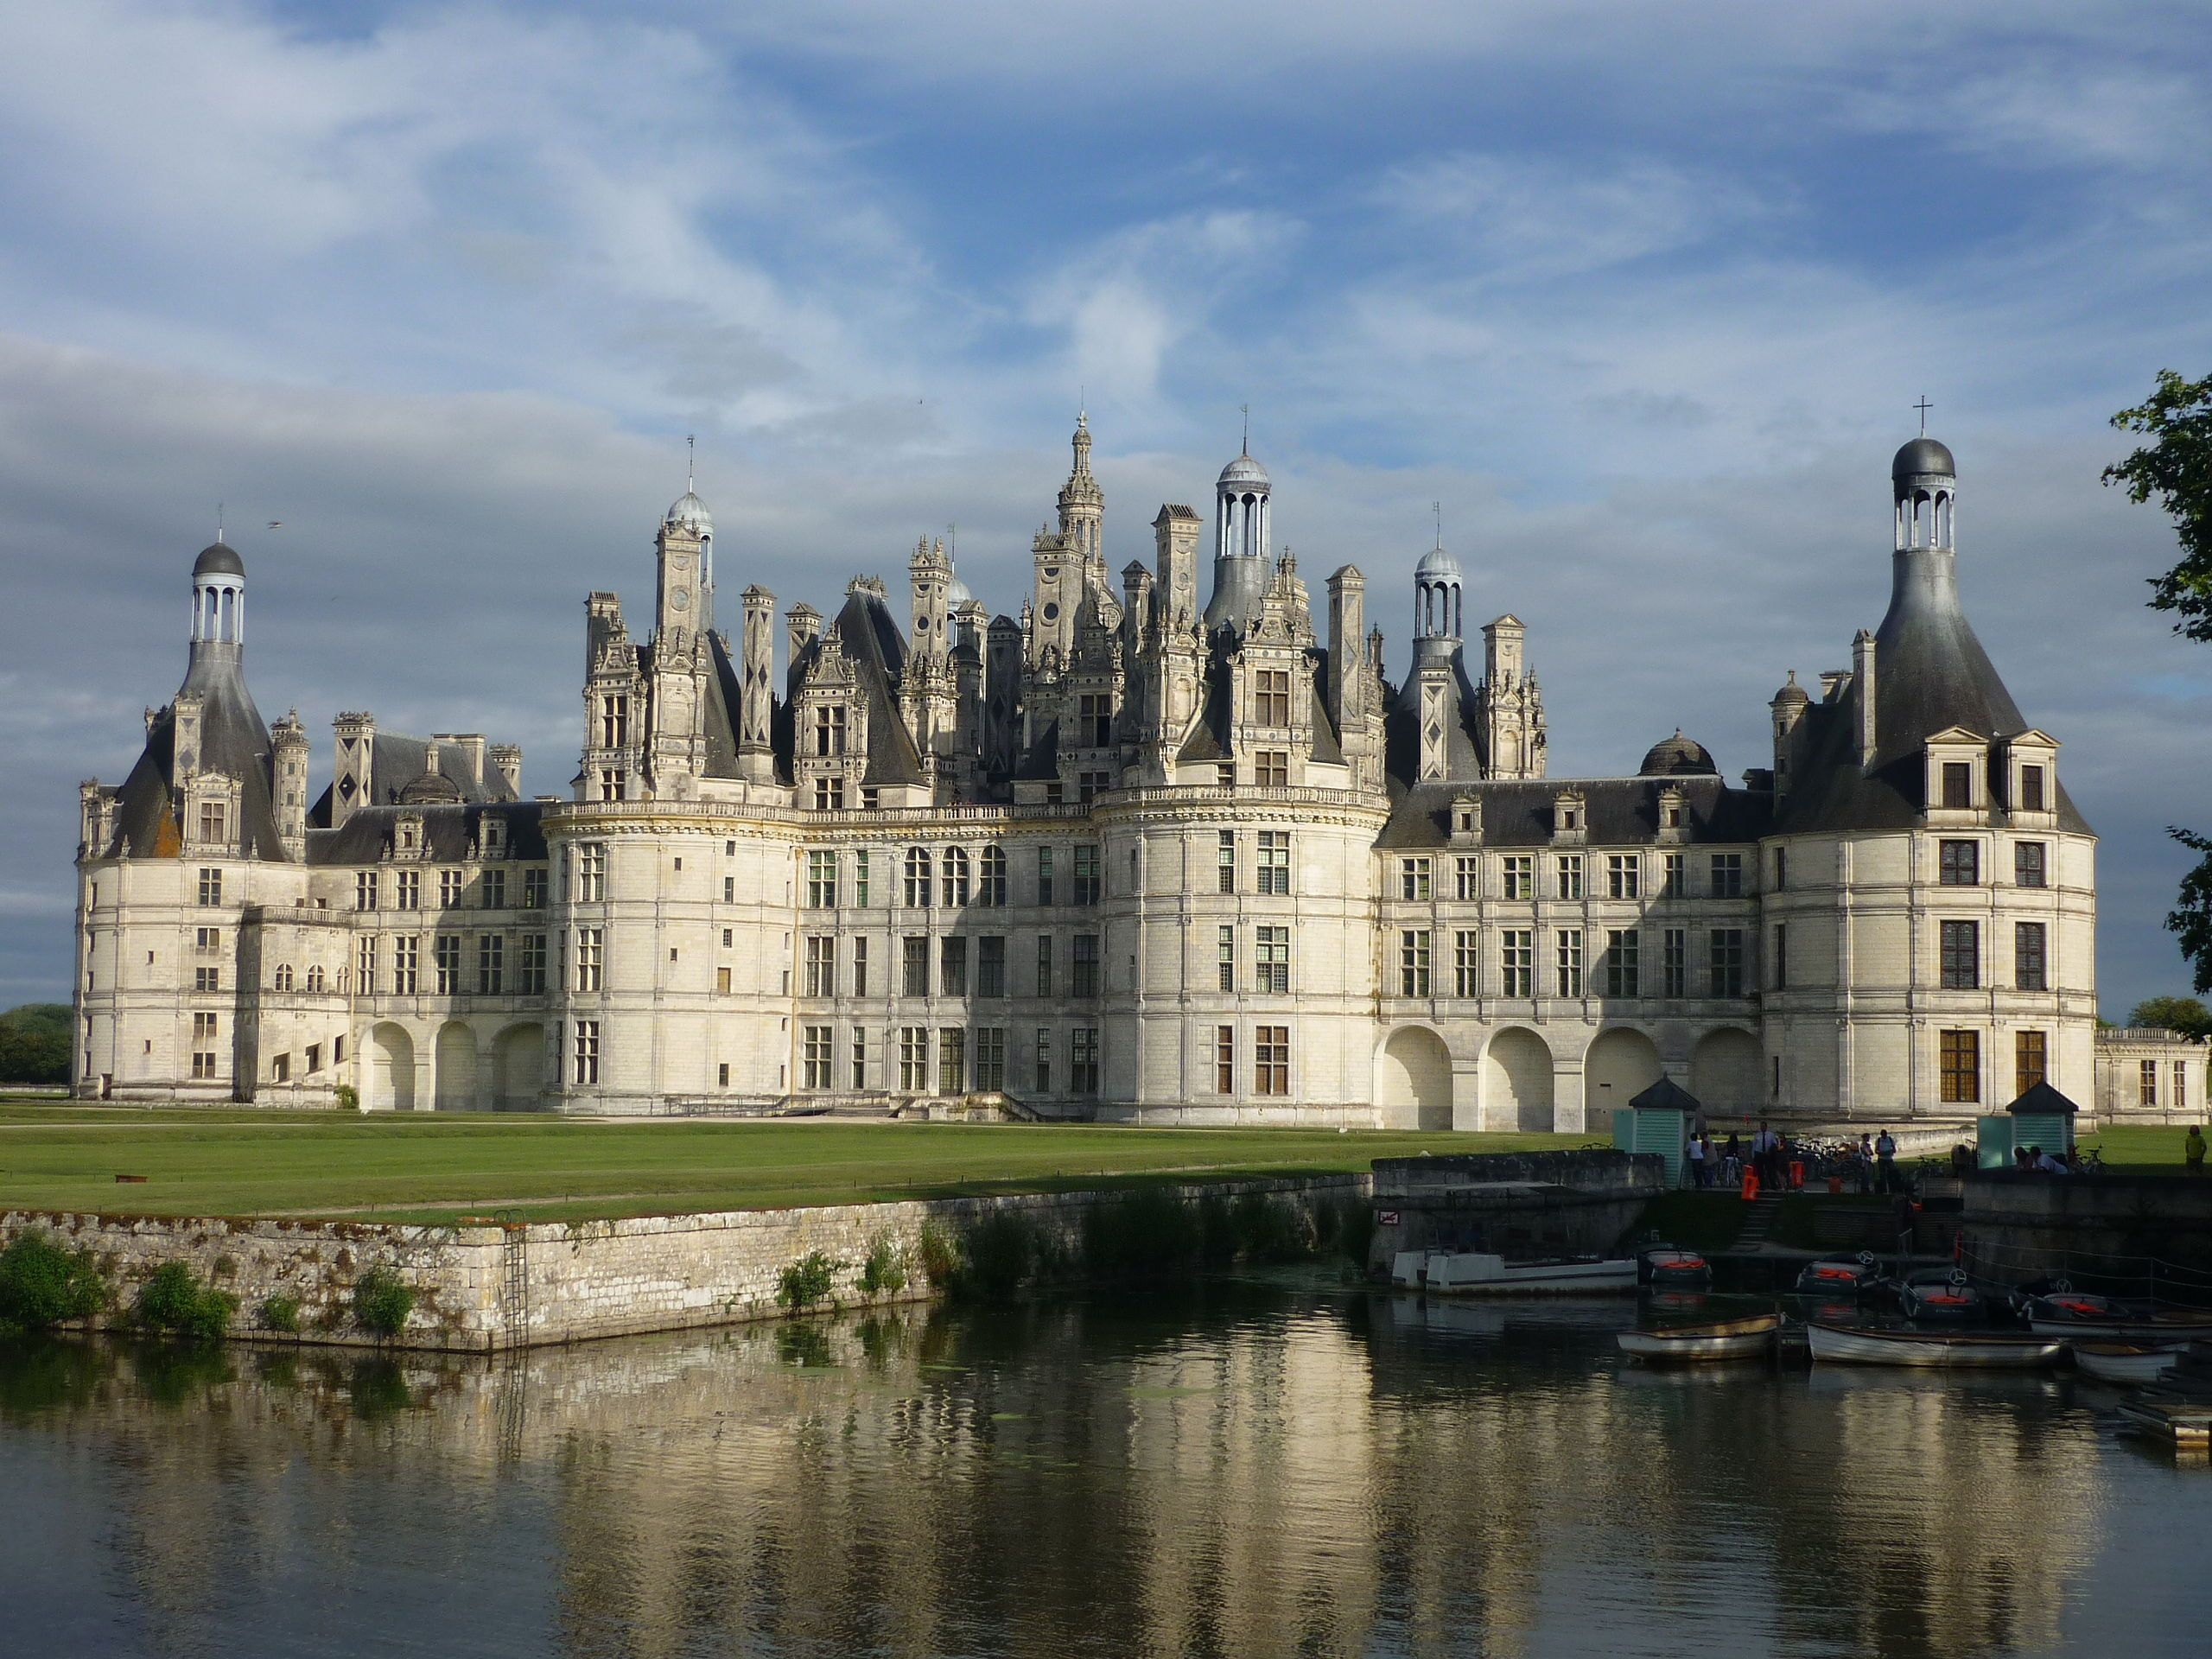 Chateau De Chambord 1519 1547 Is One Of The Most Famous Examples